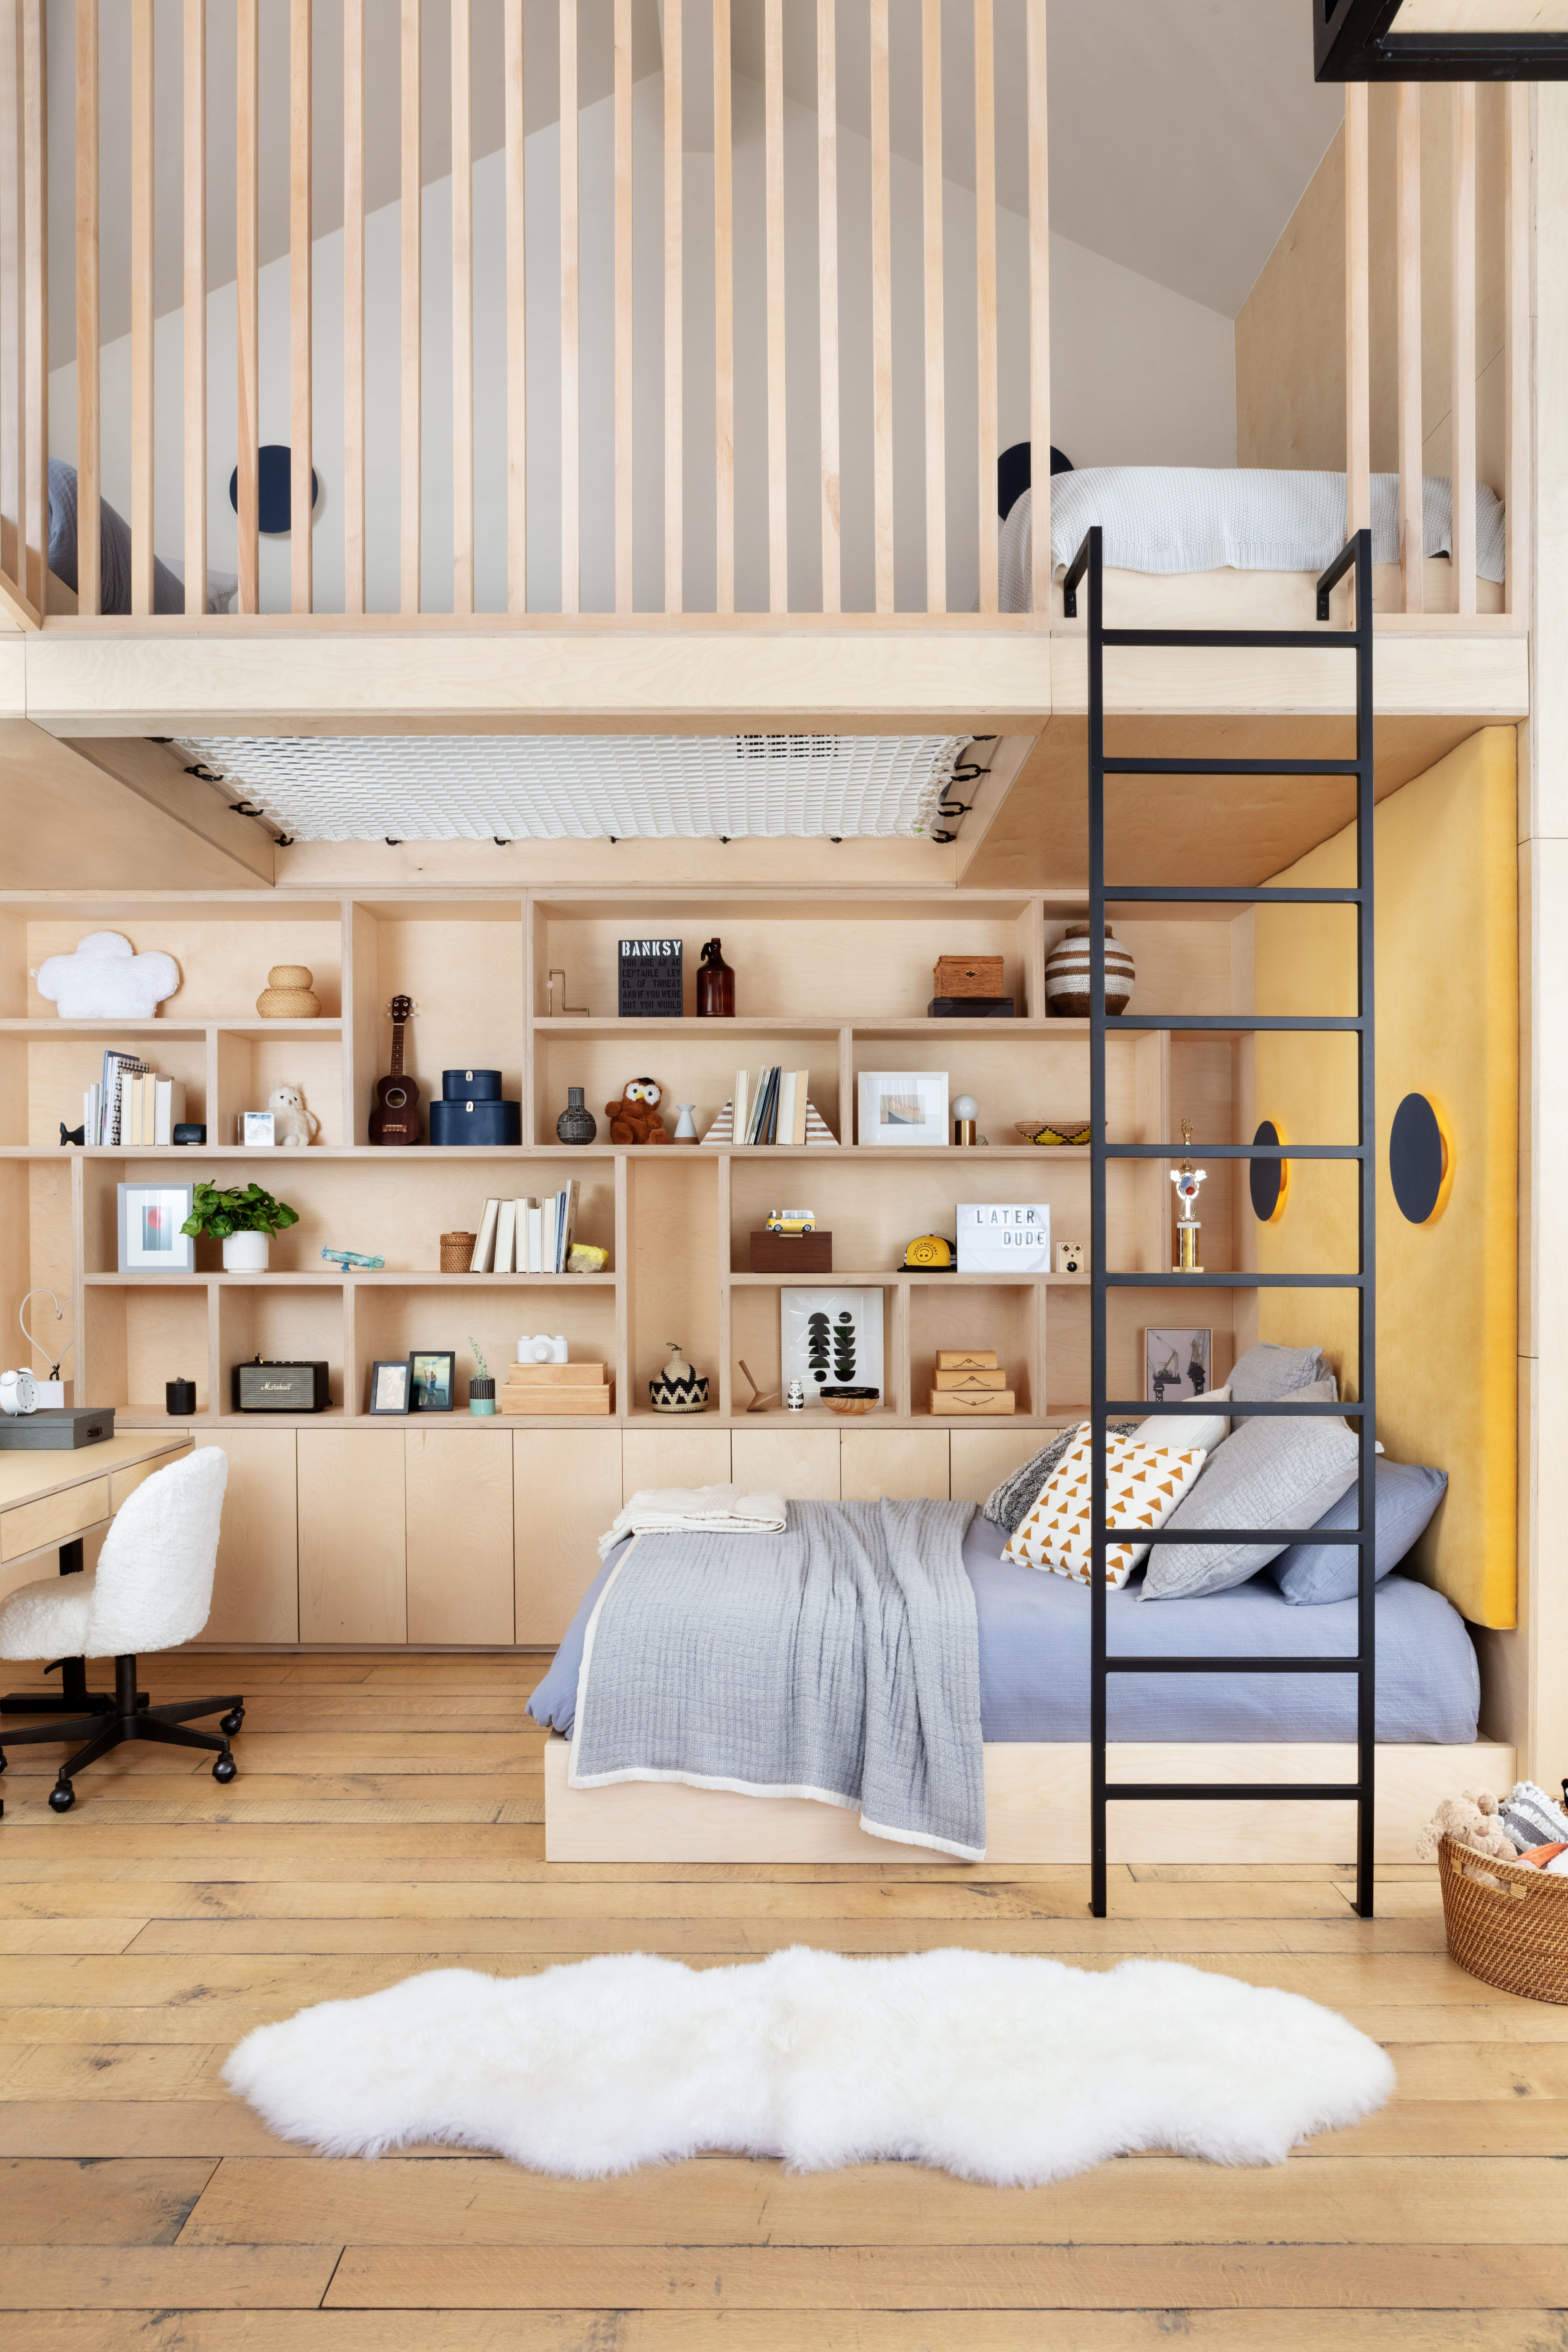 3 Kids Bedroom Ideas We Learned From This Playful L.A. Home